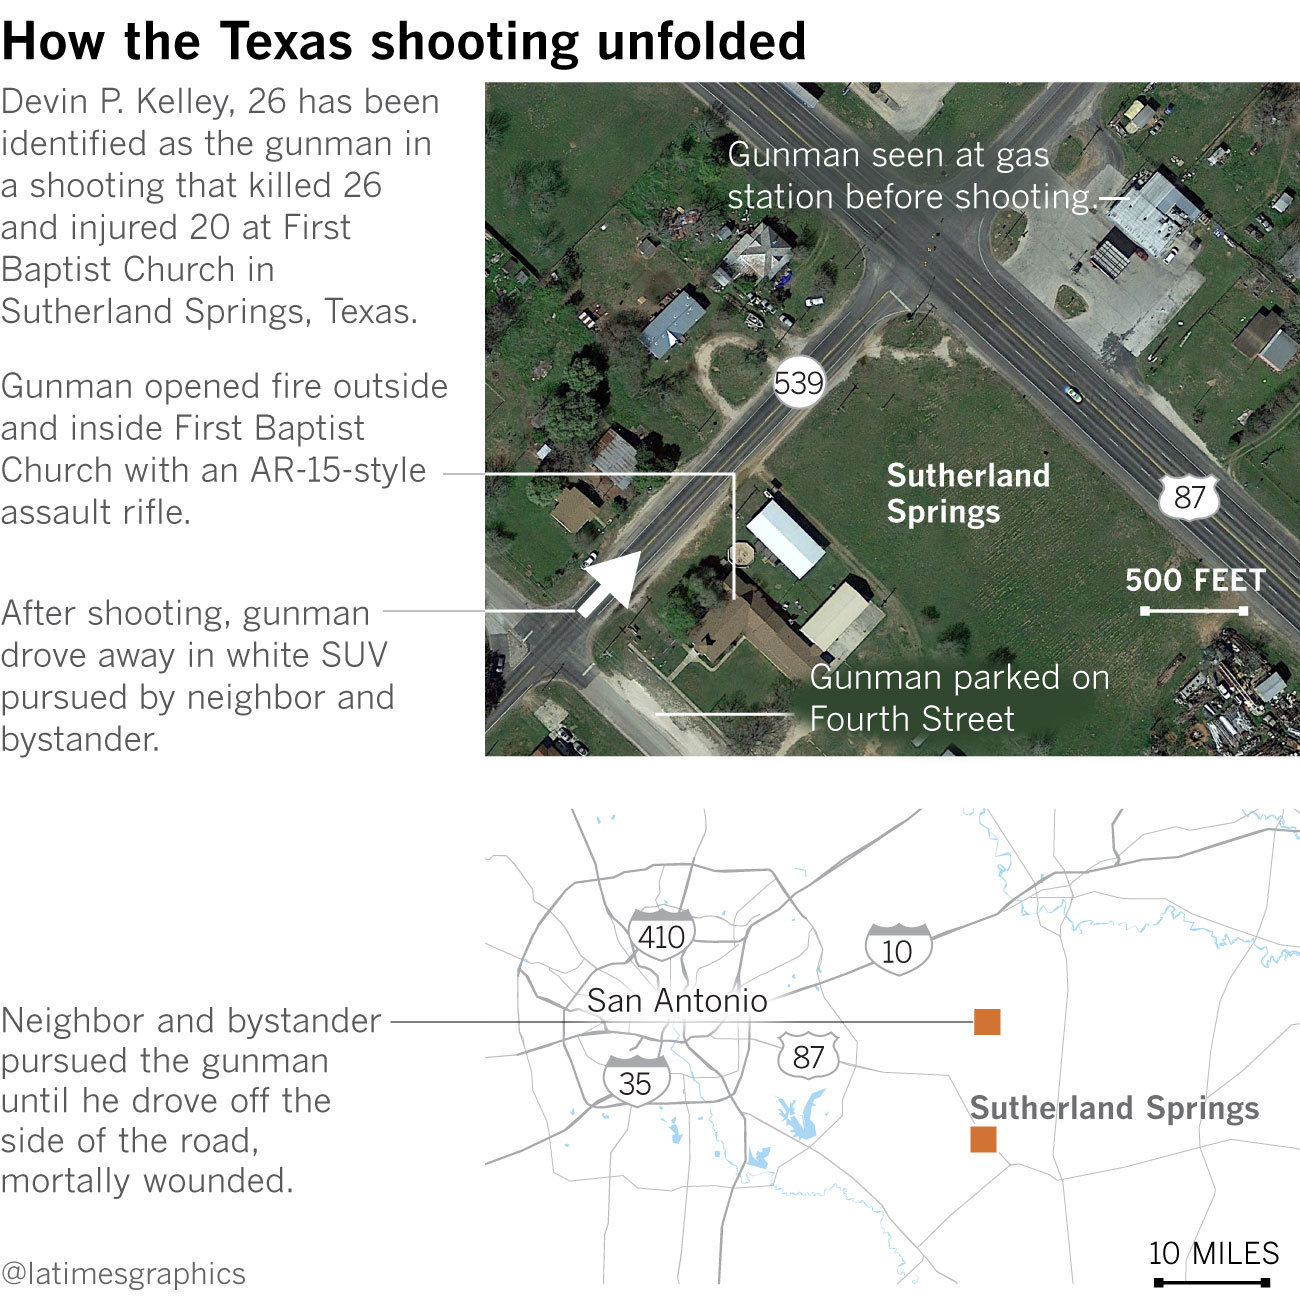 Air Force Error Allowed Texas Shooter to Pass Firearm Background Check